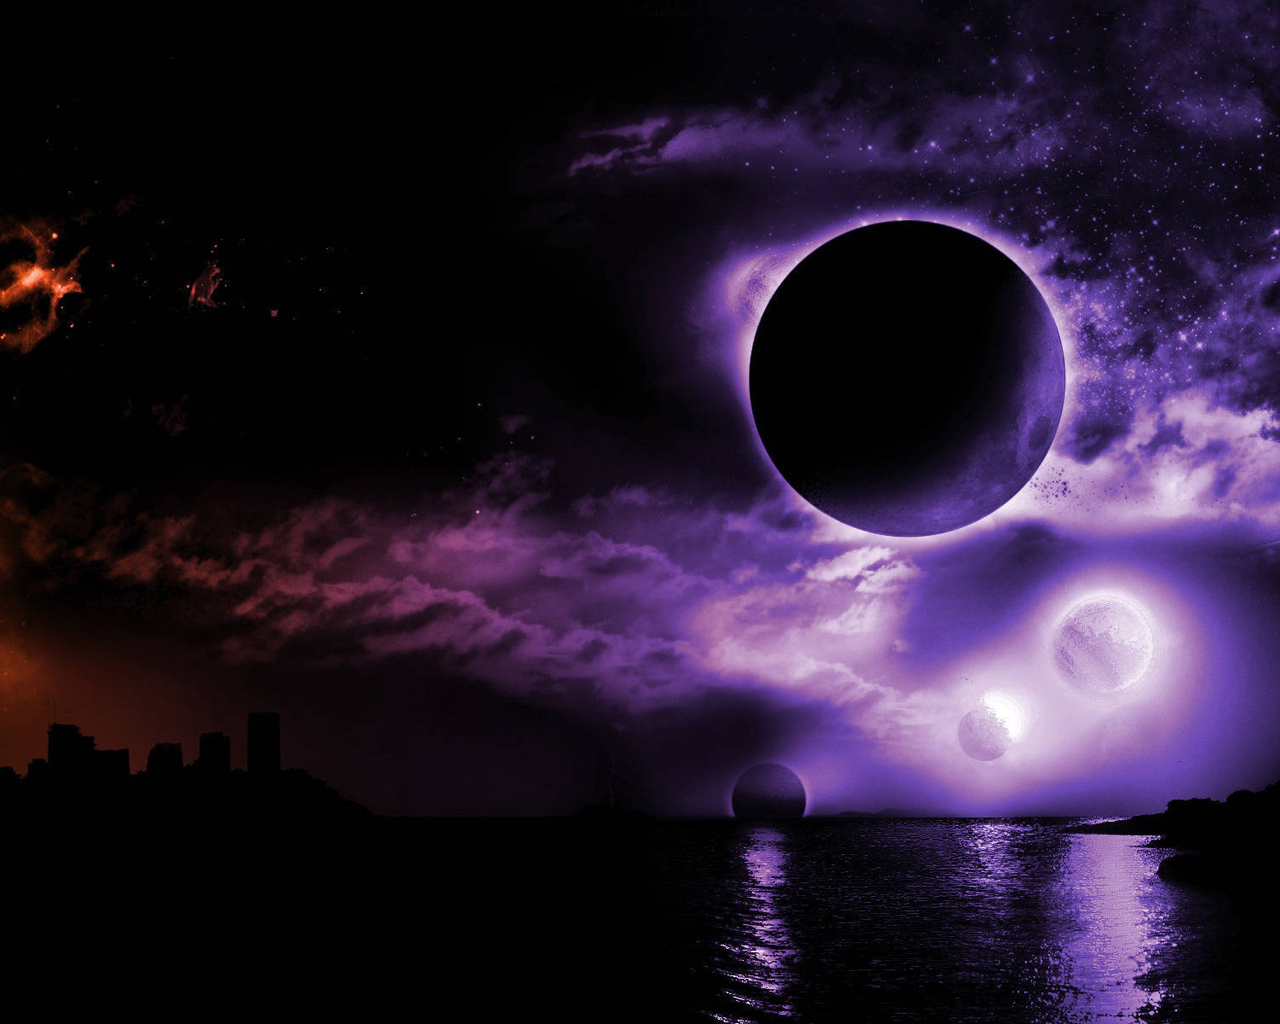 Purple planets and sky